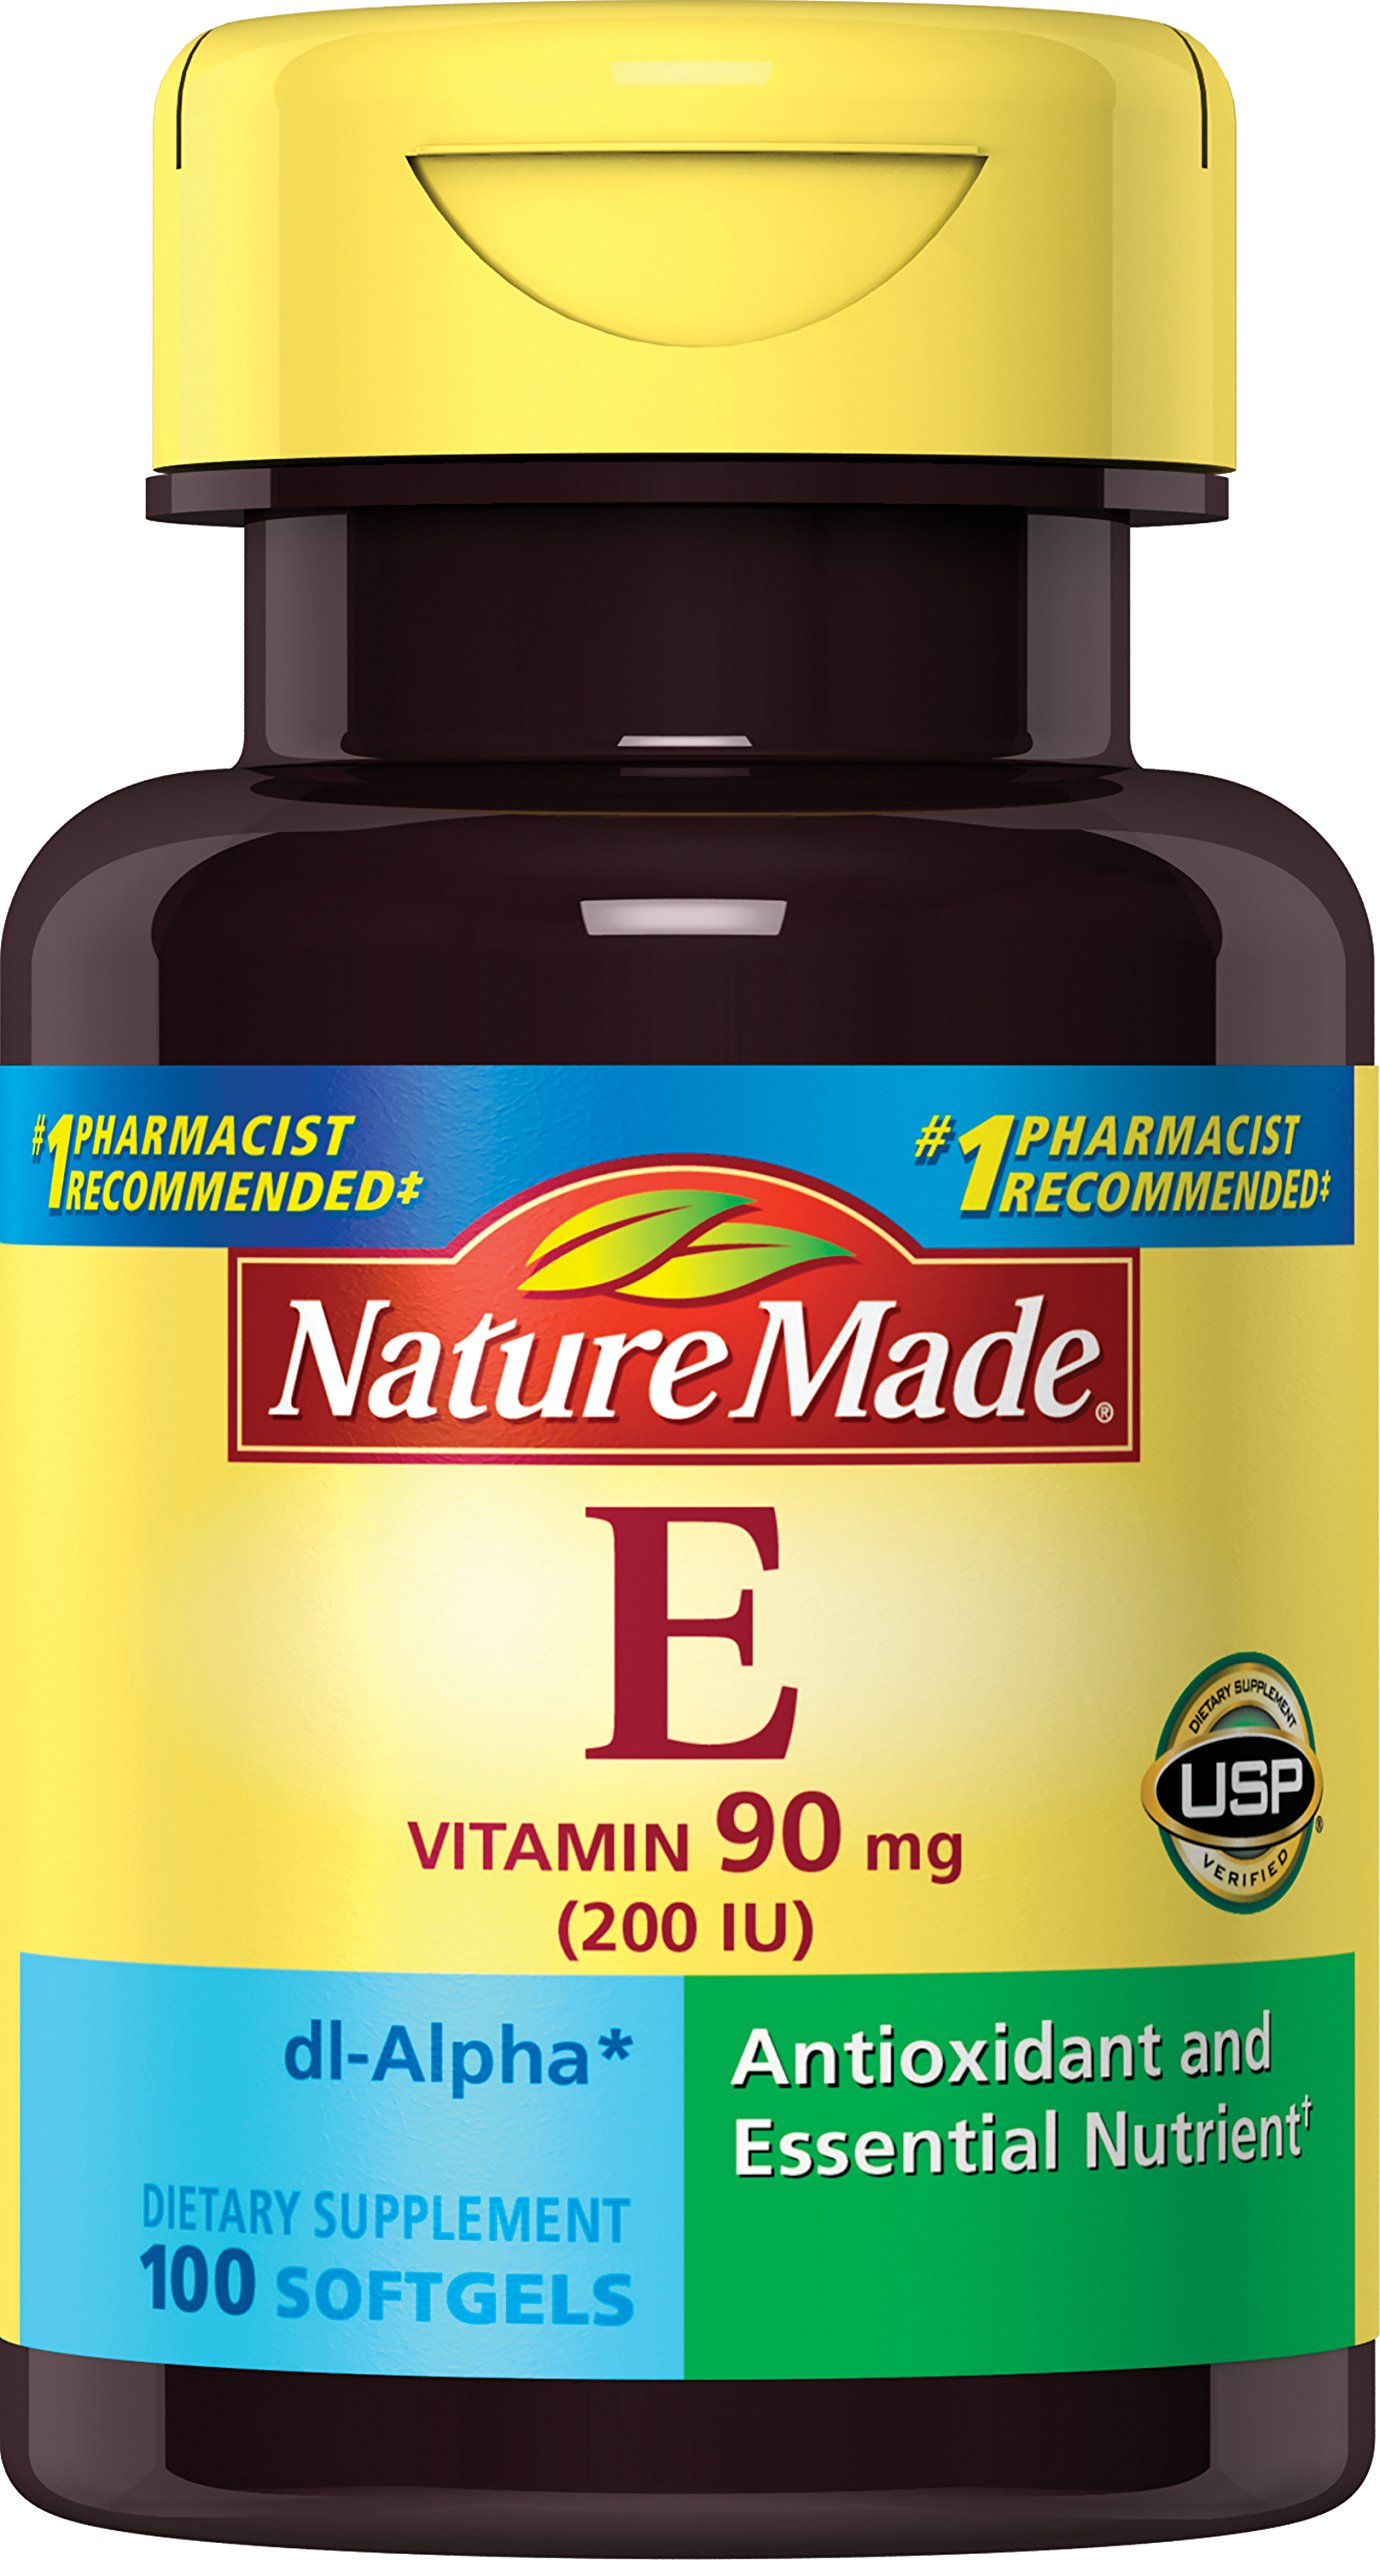 Nature Made Vitamin E 200 IU (dl-Alpha) Softgels (Pack of 3)